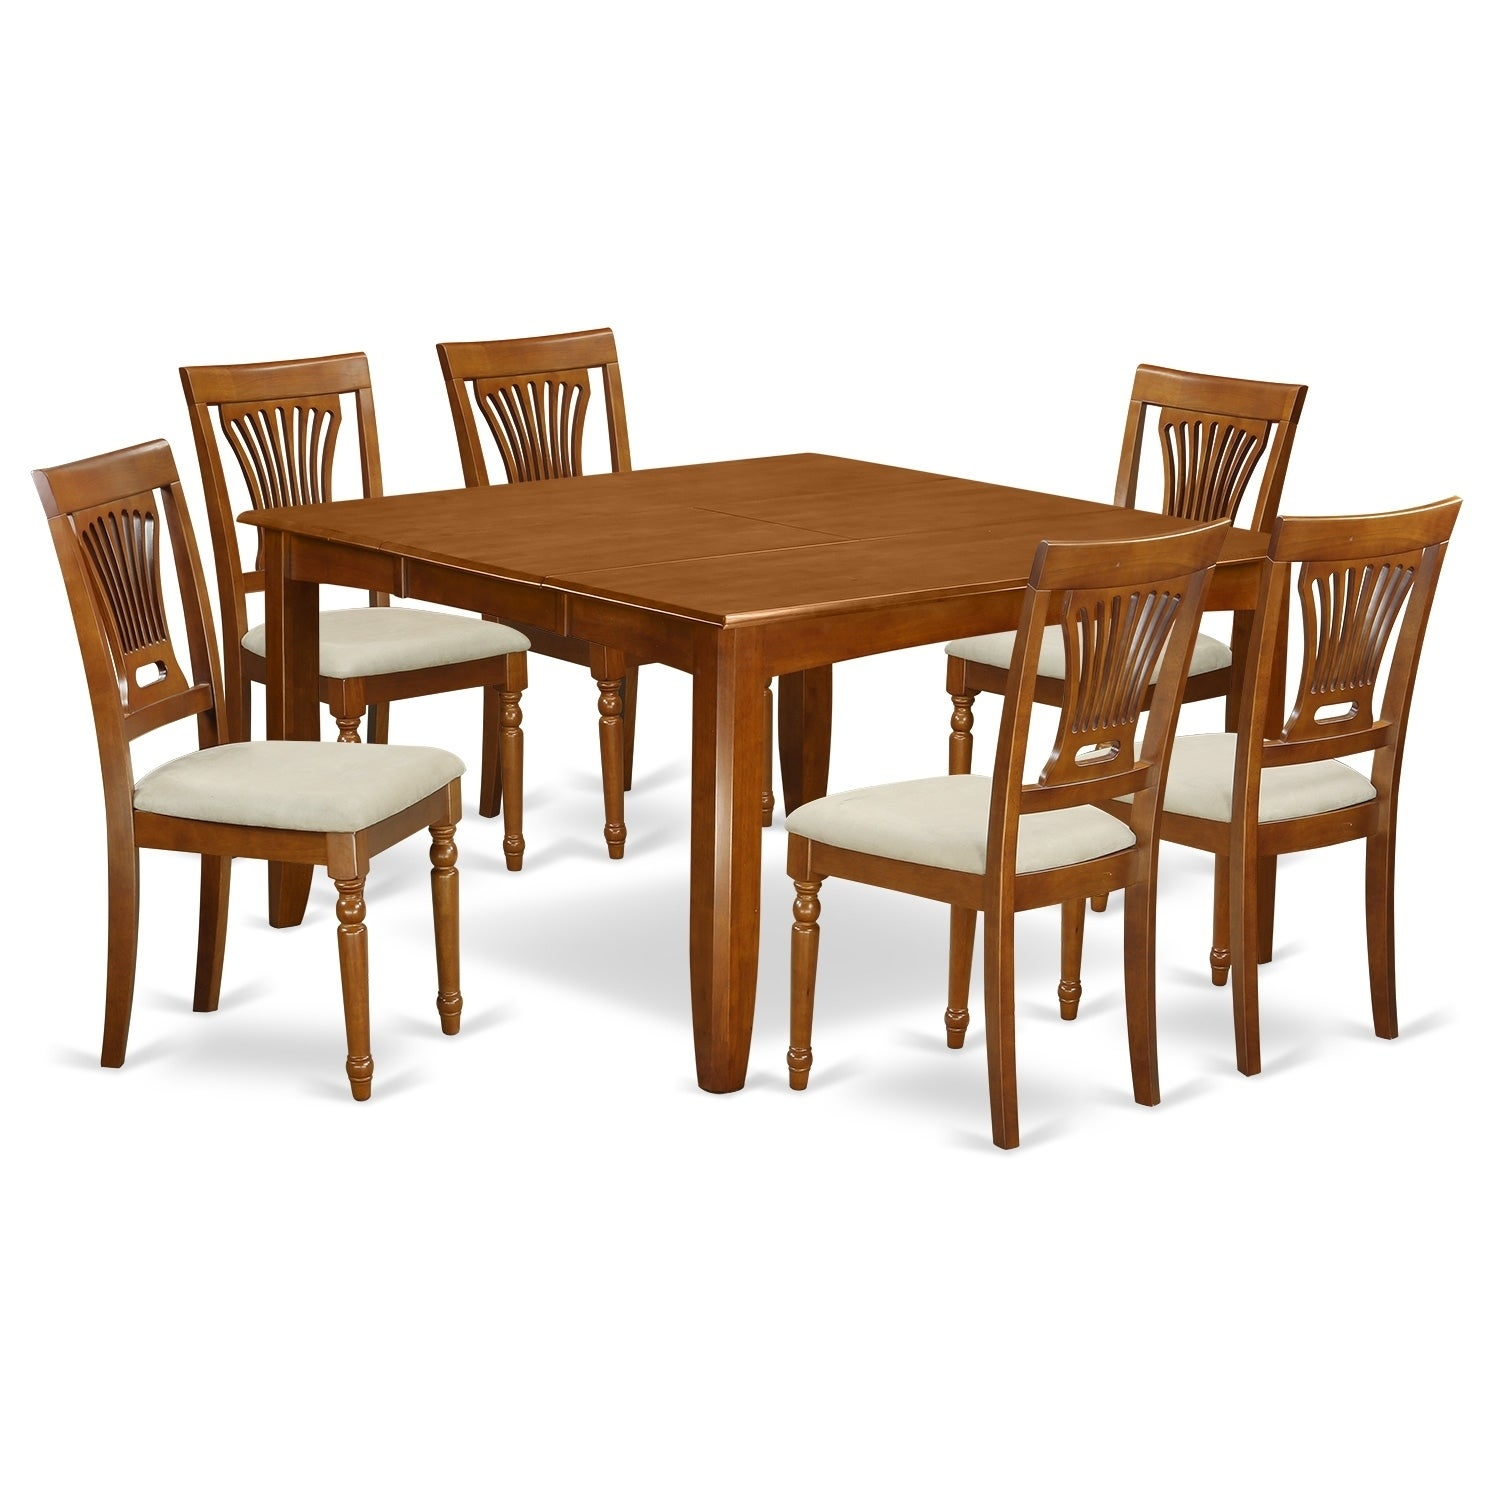 7 piece dining room set table with leaf and 6 kitchen chairs wood rh ebay com dining room table with leaf and 8 chairs Round Dining Table